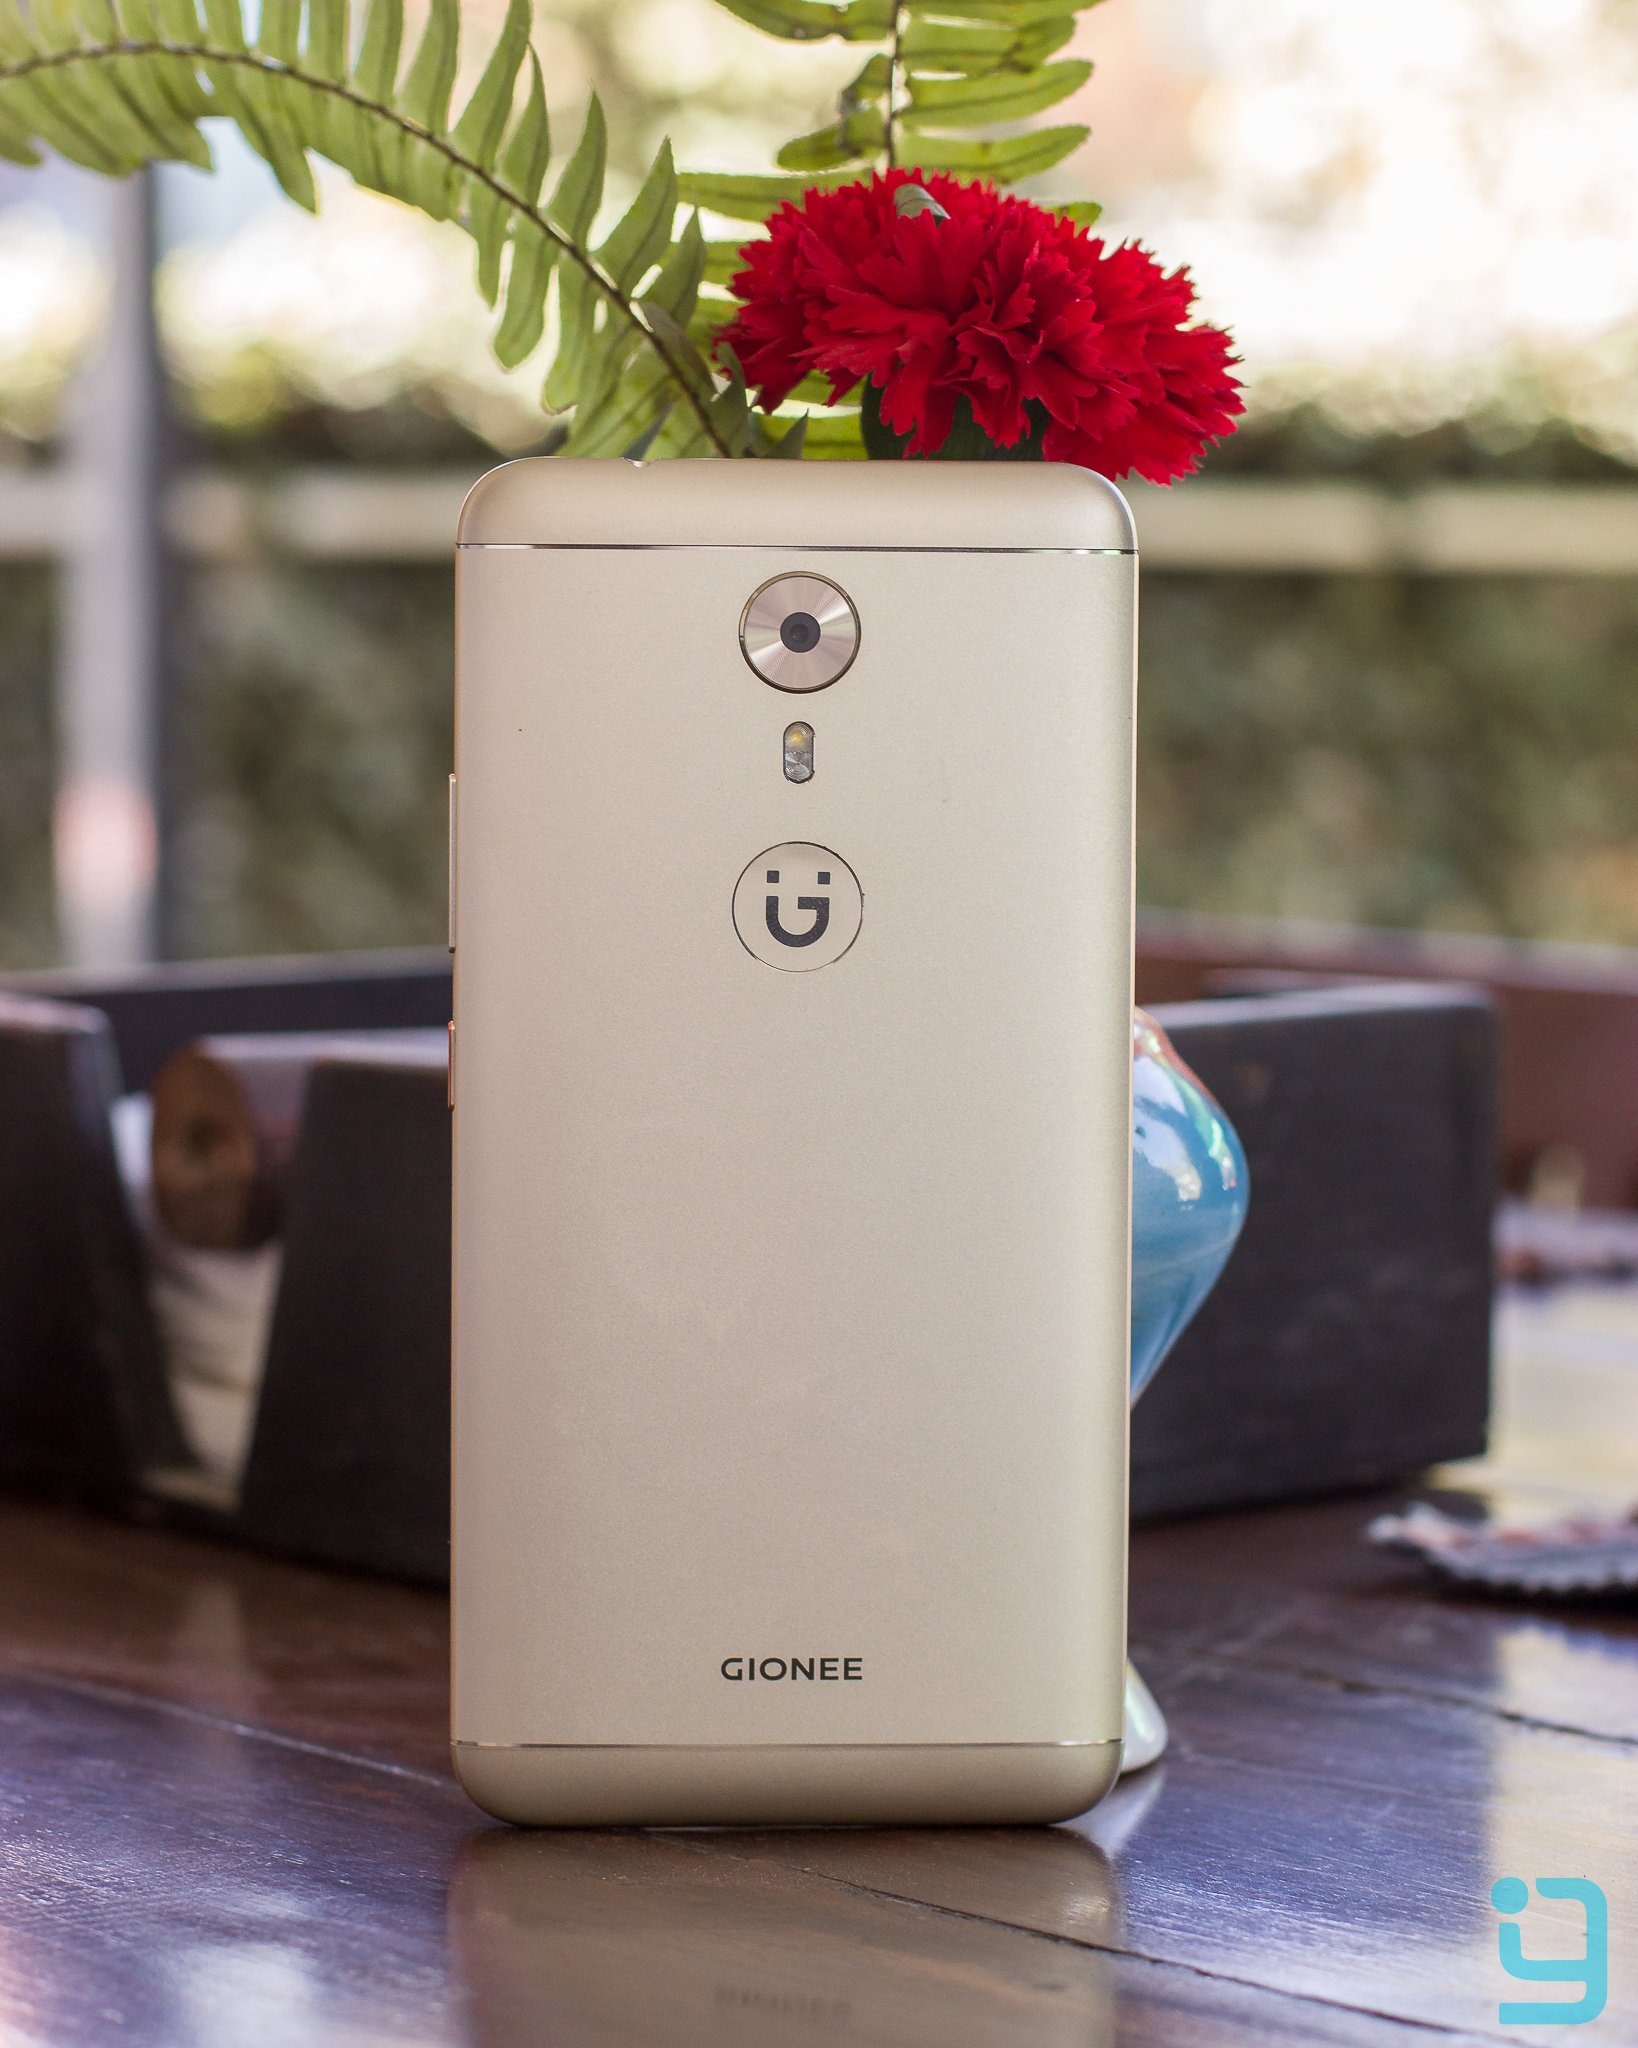 Gionee A1 back View with Gionee Branding